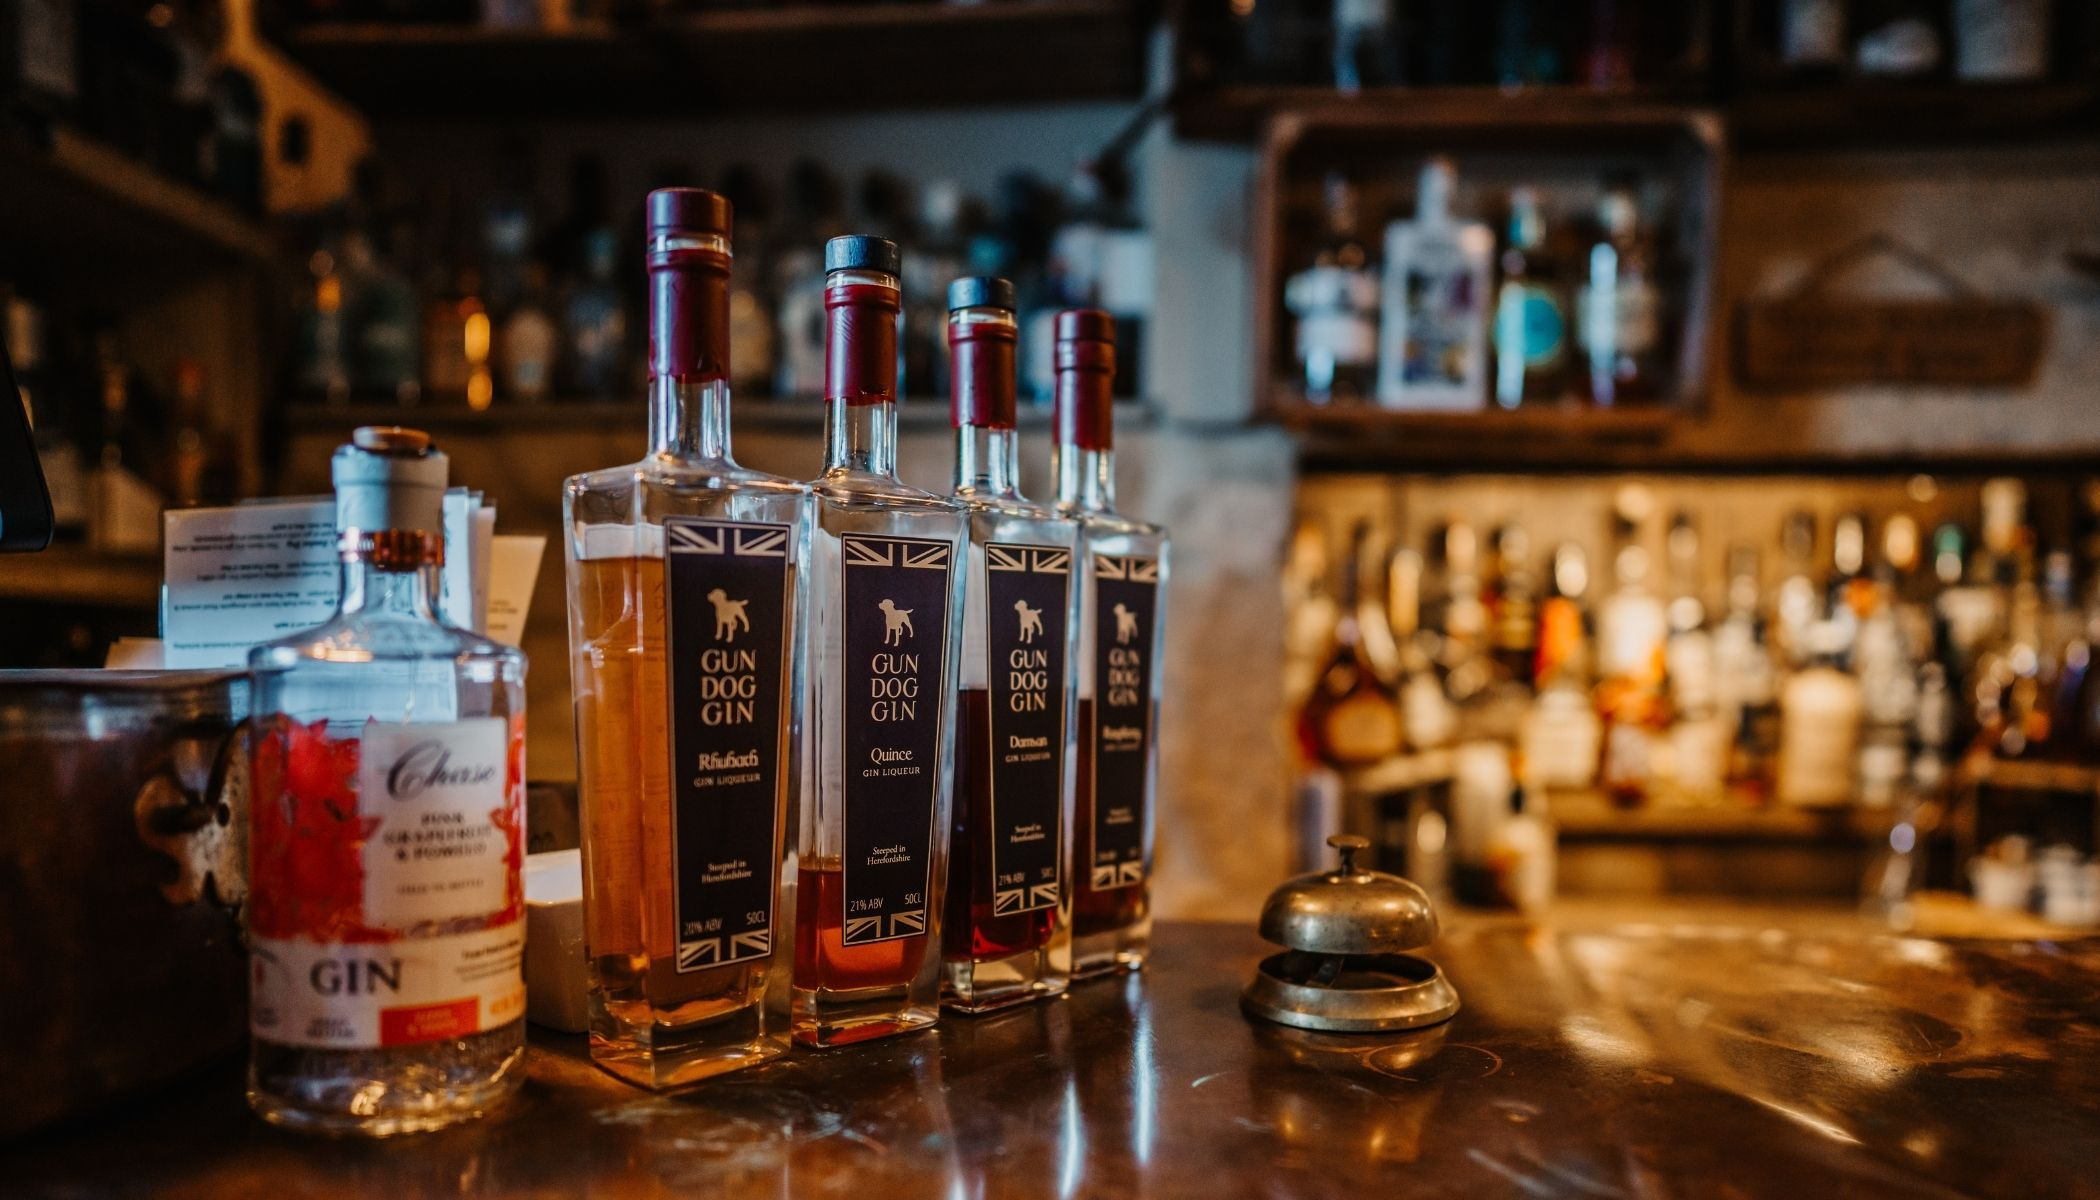 Visit our amazing gin bar